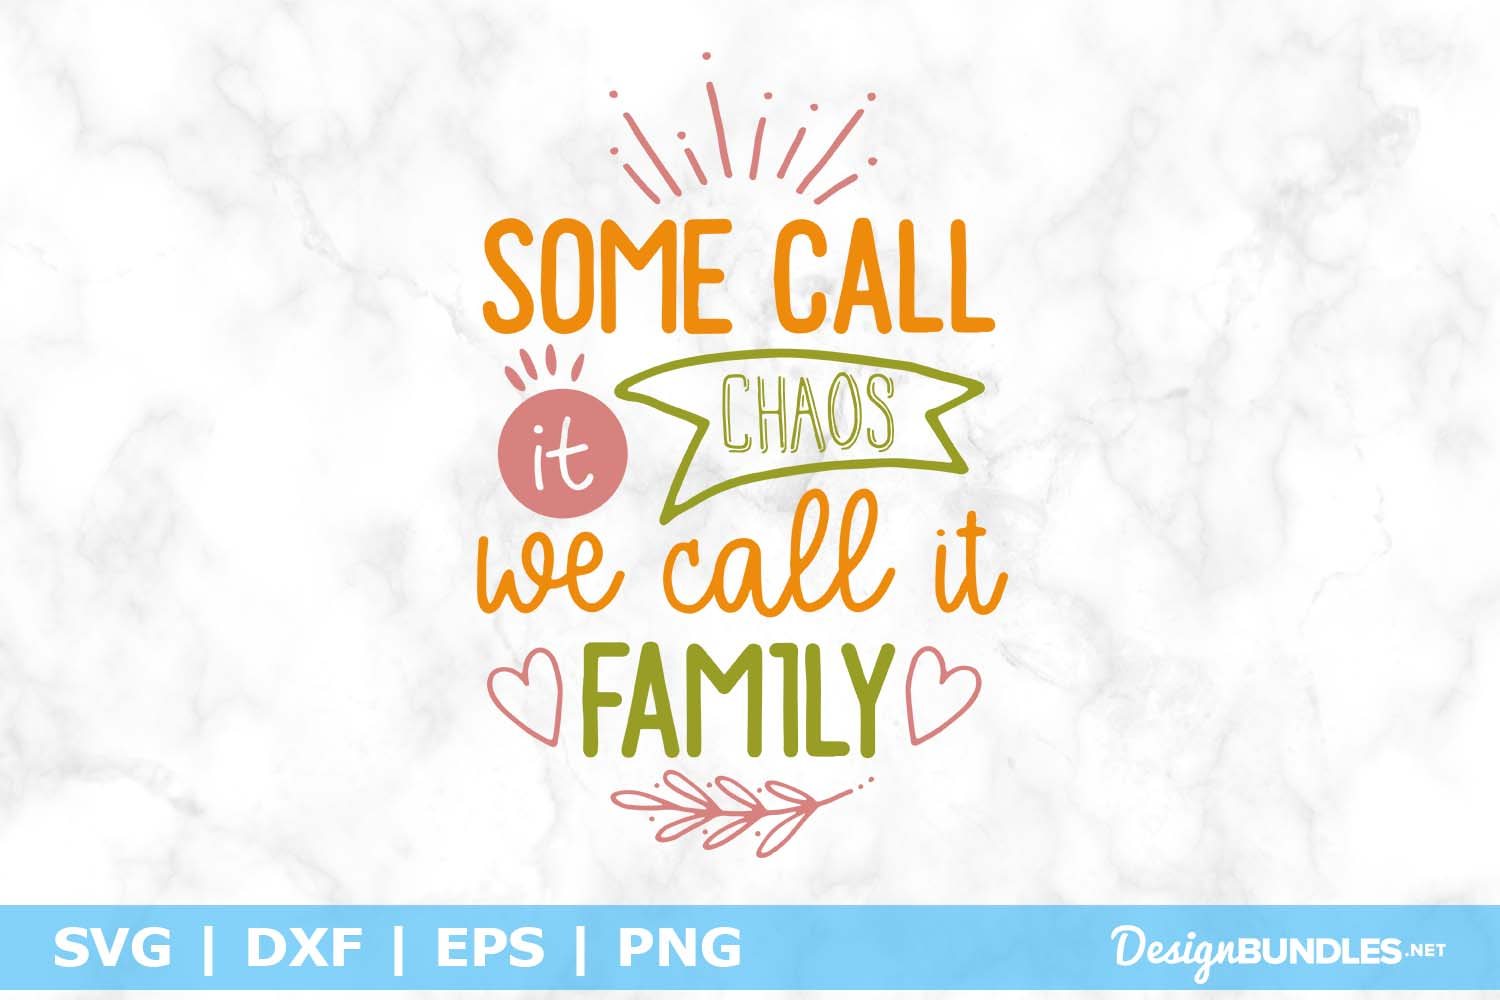 Some Call It Chaos We Call It Family SVG File example image 1